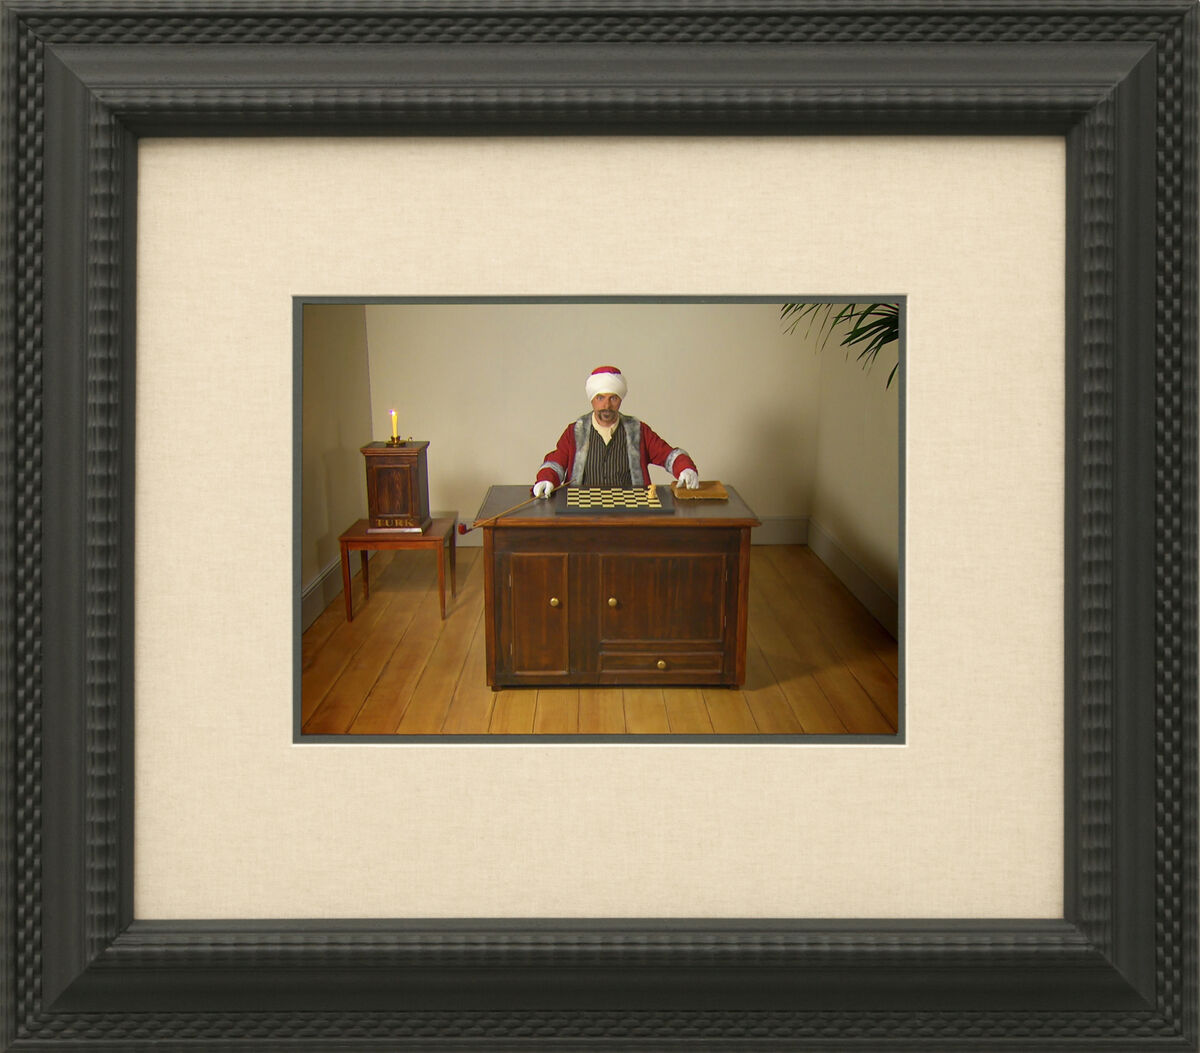 Gavin Turk, The Mechanical Turk, 2006. © Gavin Turk. Image courtesy of the Freud Museum London.